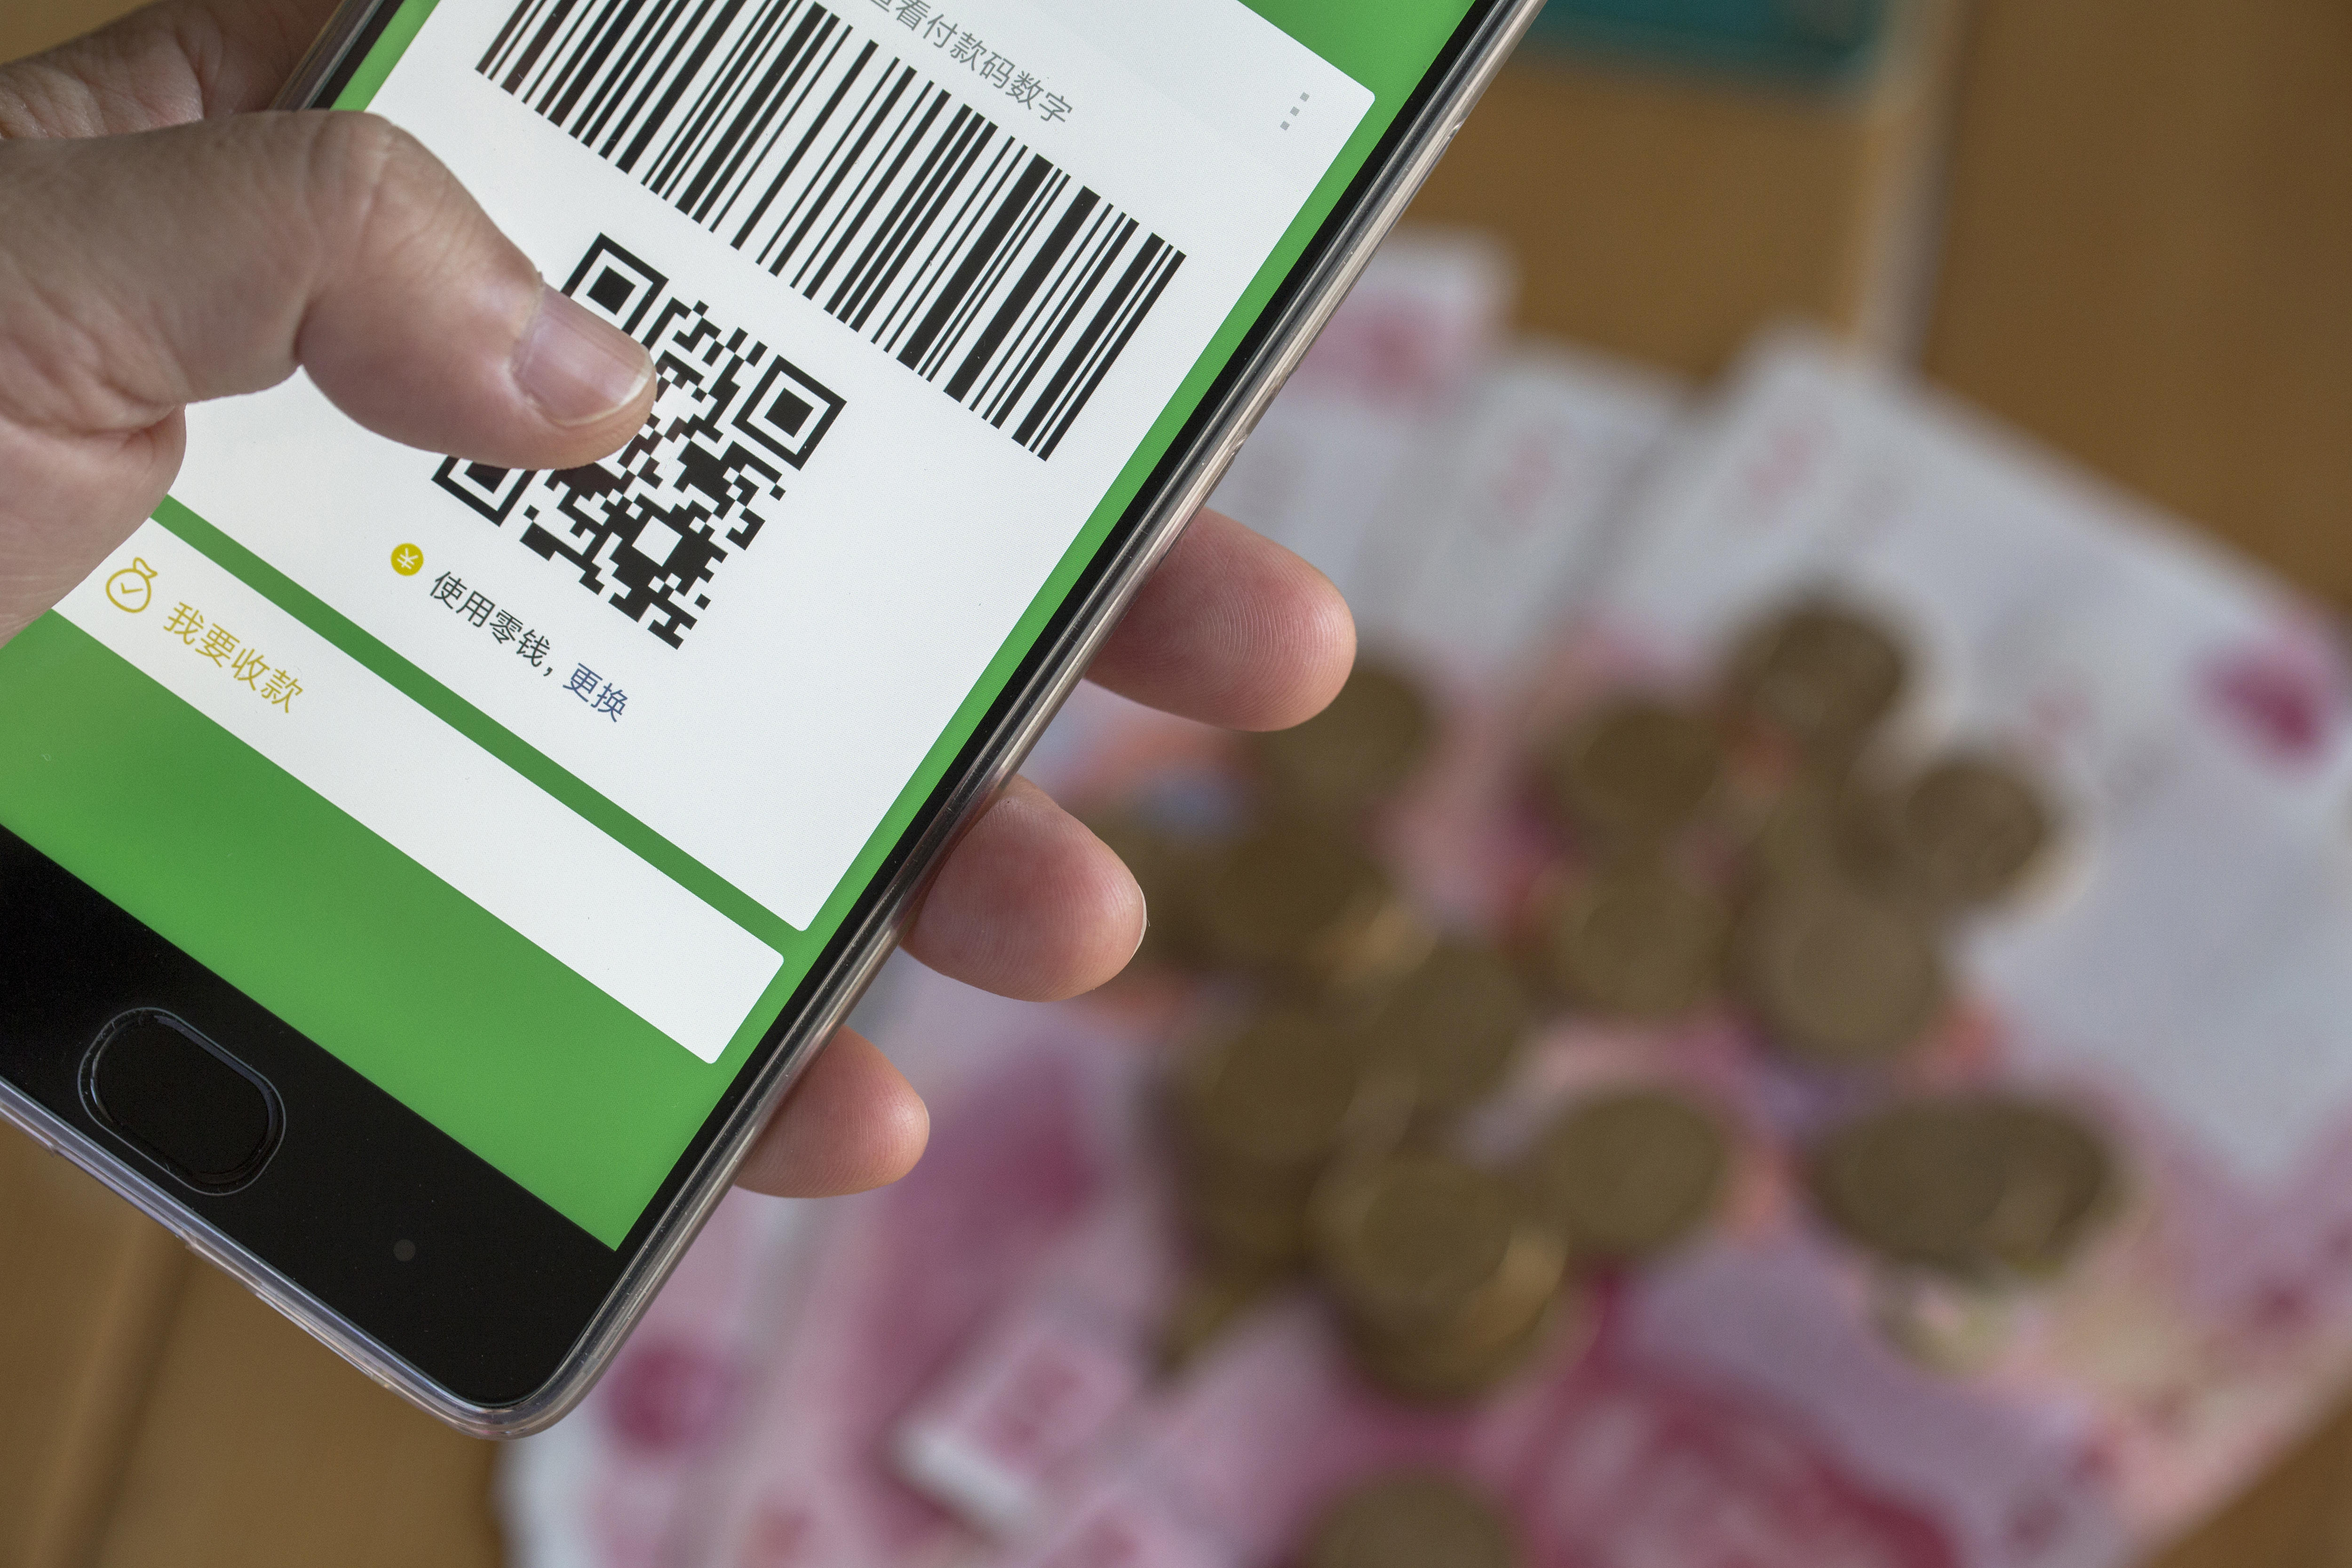 WeChat payment on mobile phone, arranged for photography.